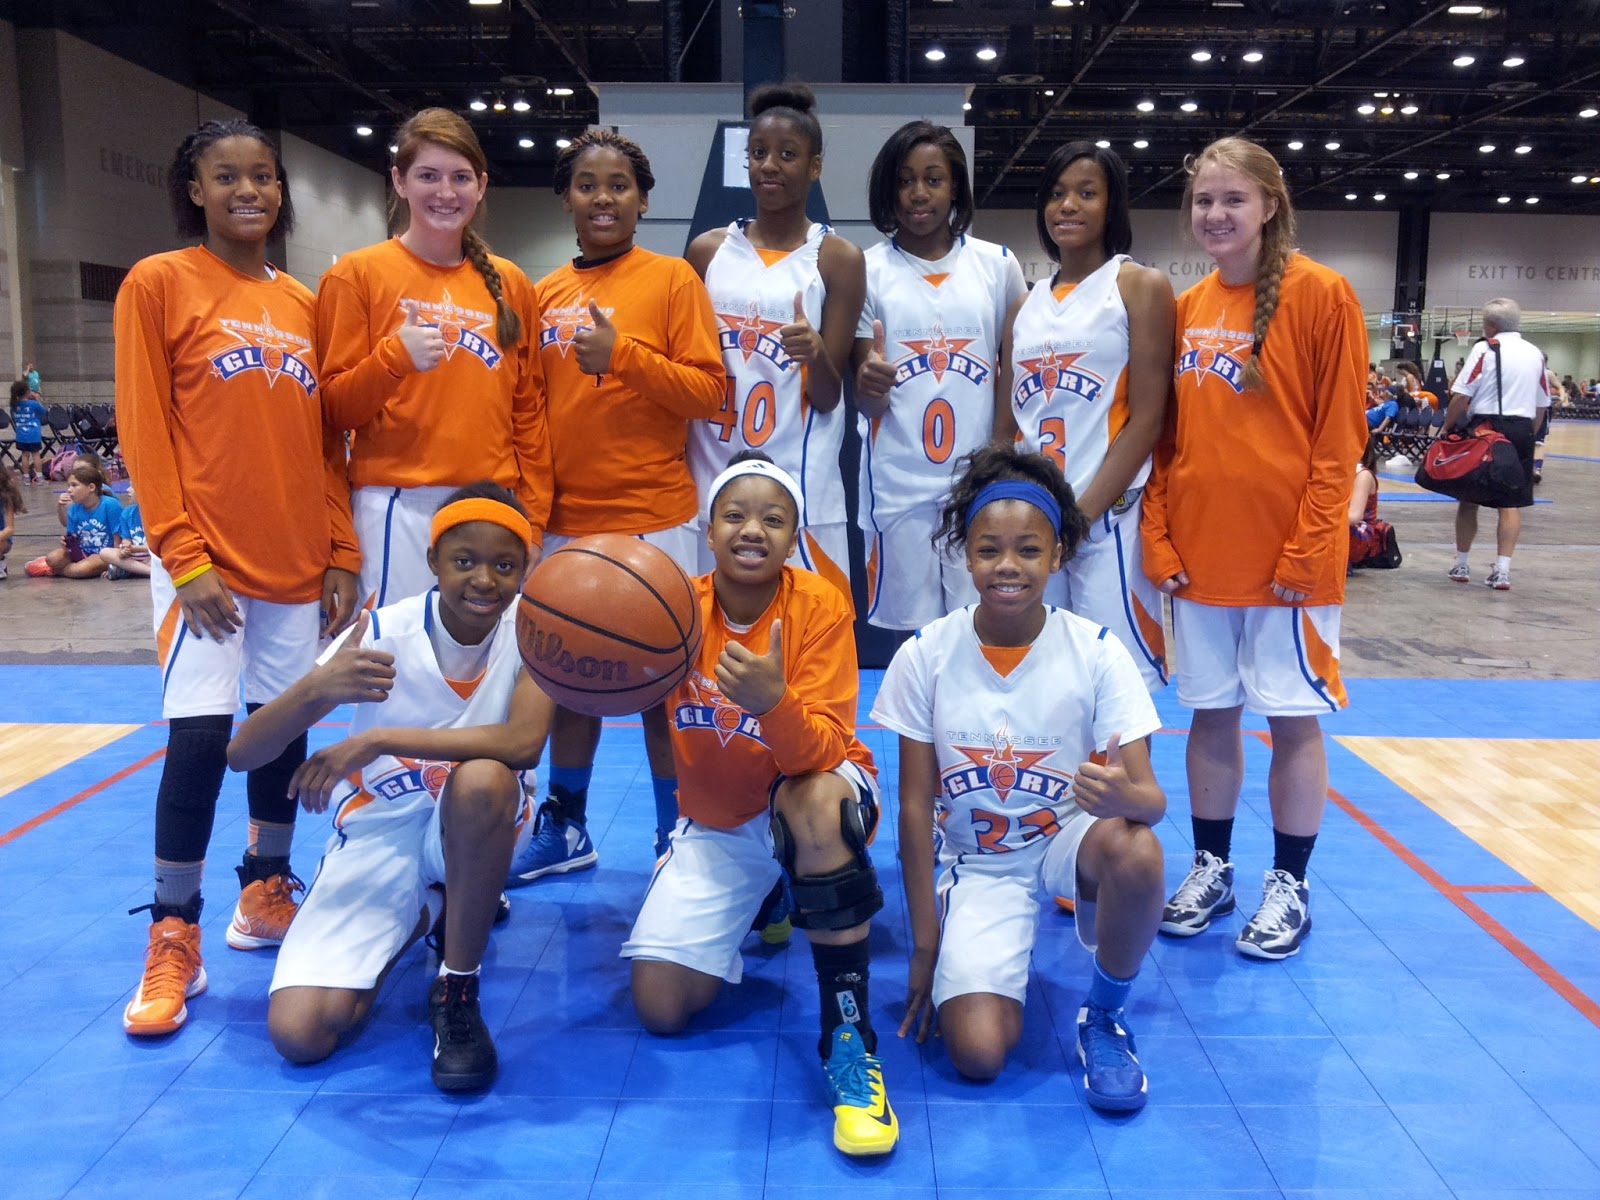 Tennessee Basketball Team Team Tennessee Glory 14u/9th